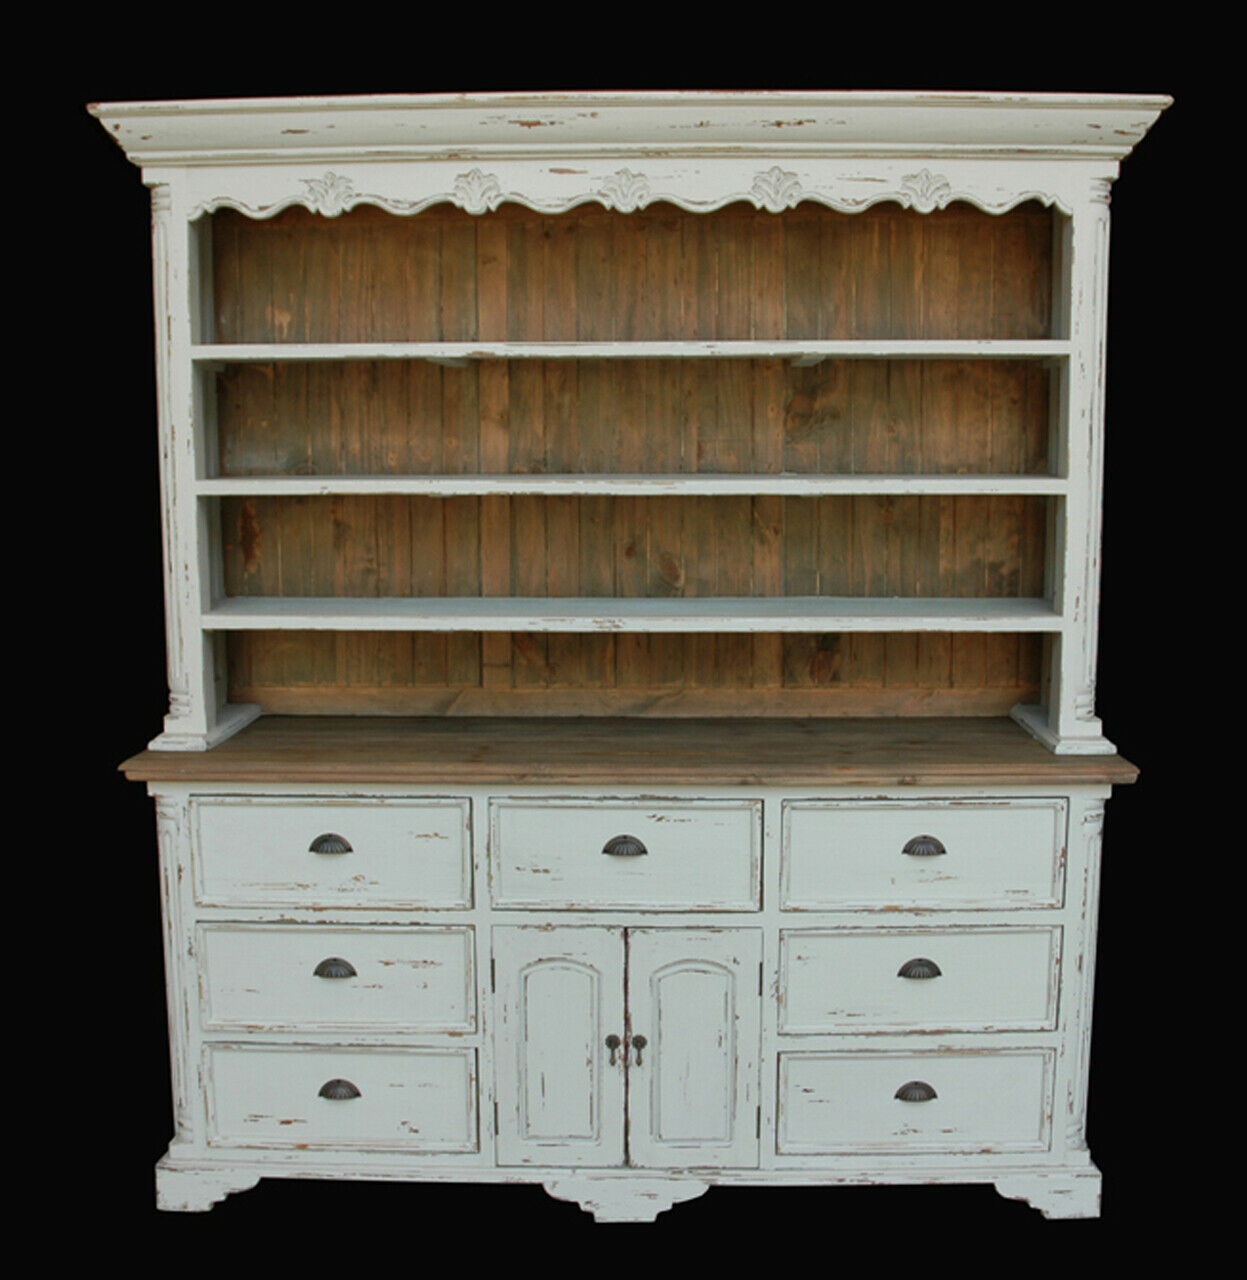 Farmhouse Buffet and Hutch Distressed White Natural Wood ...